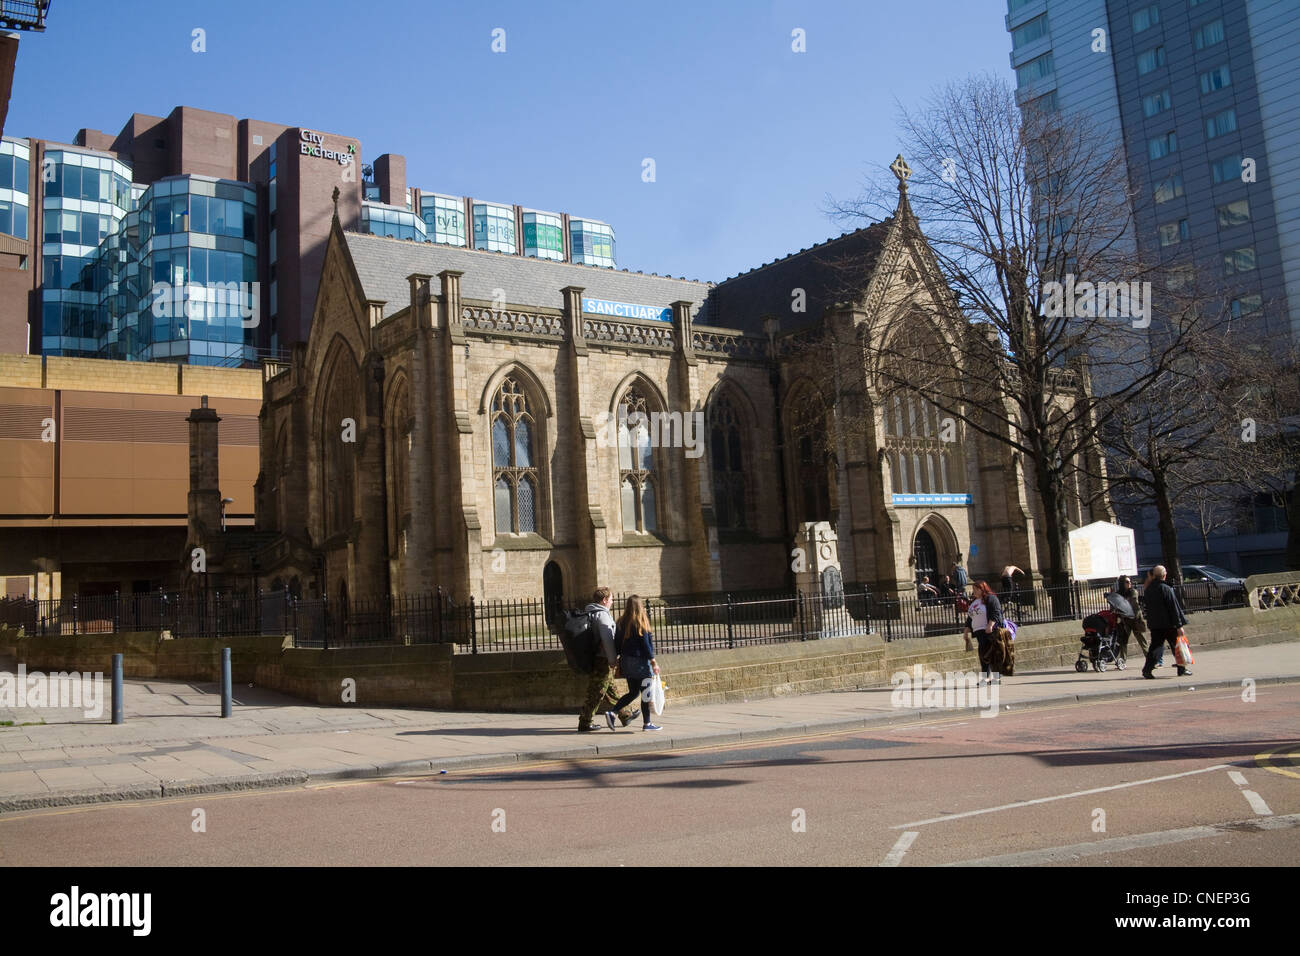 Leeds West Yorkshire England Mill Hill Unitarian Chapel in City Square surrounded by old and new buildings - Stock Image